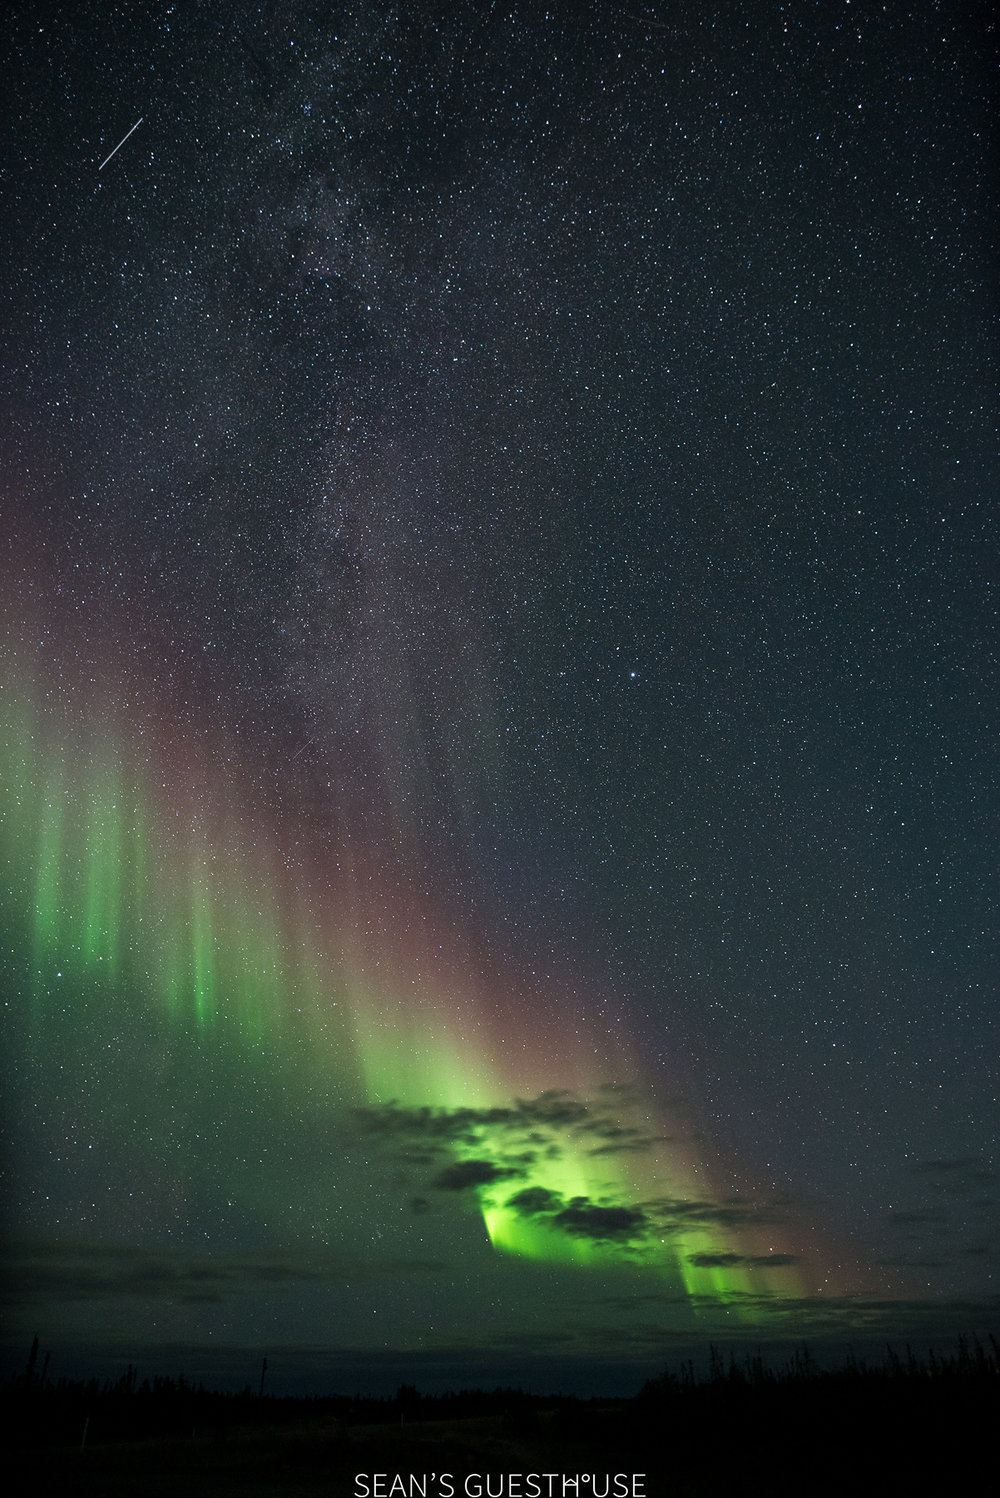 The Best Place to See the Northern Lights - Sean's Guesthouse - 4.jpg